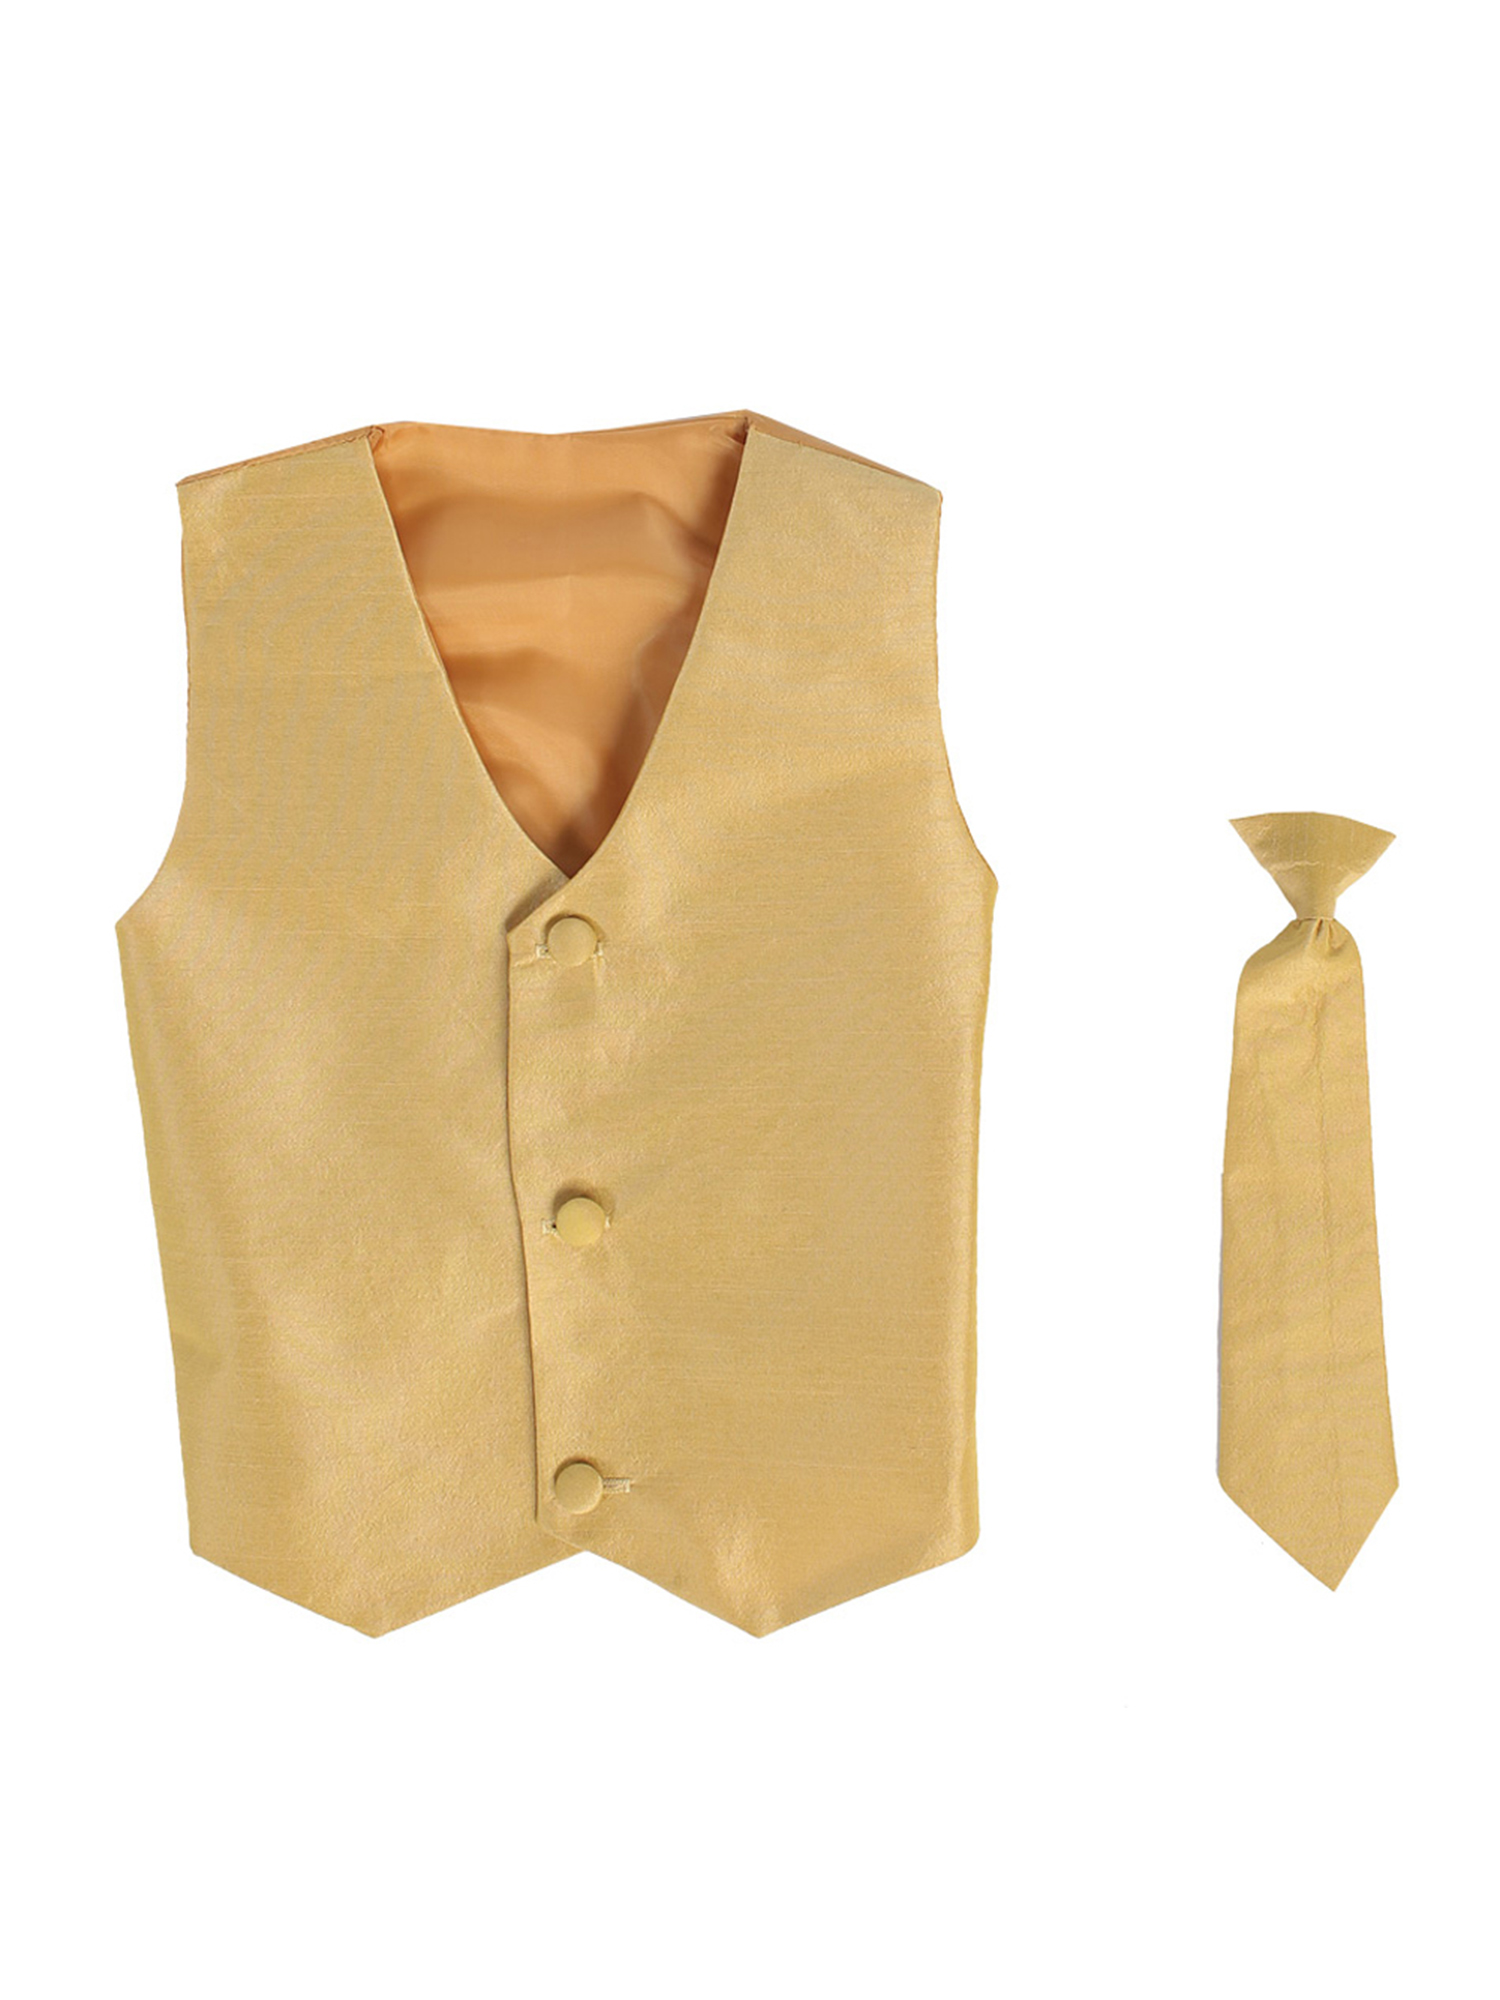 Vest and Clip On Baby Boy Necktie set - GOLD - L/XL (12-24 Months)